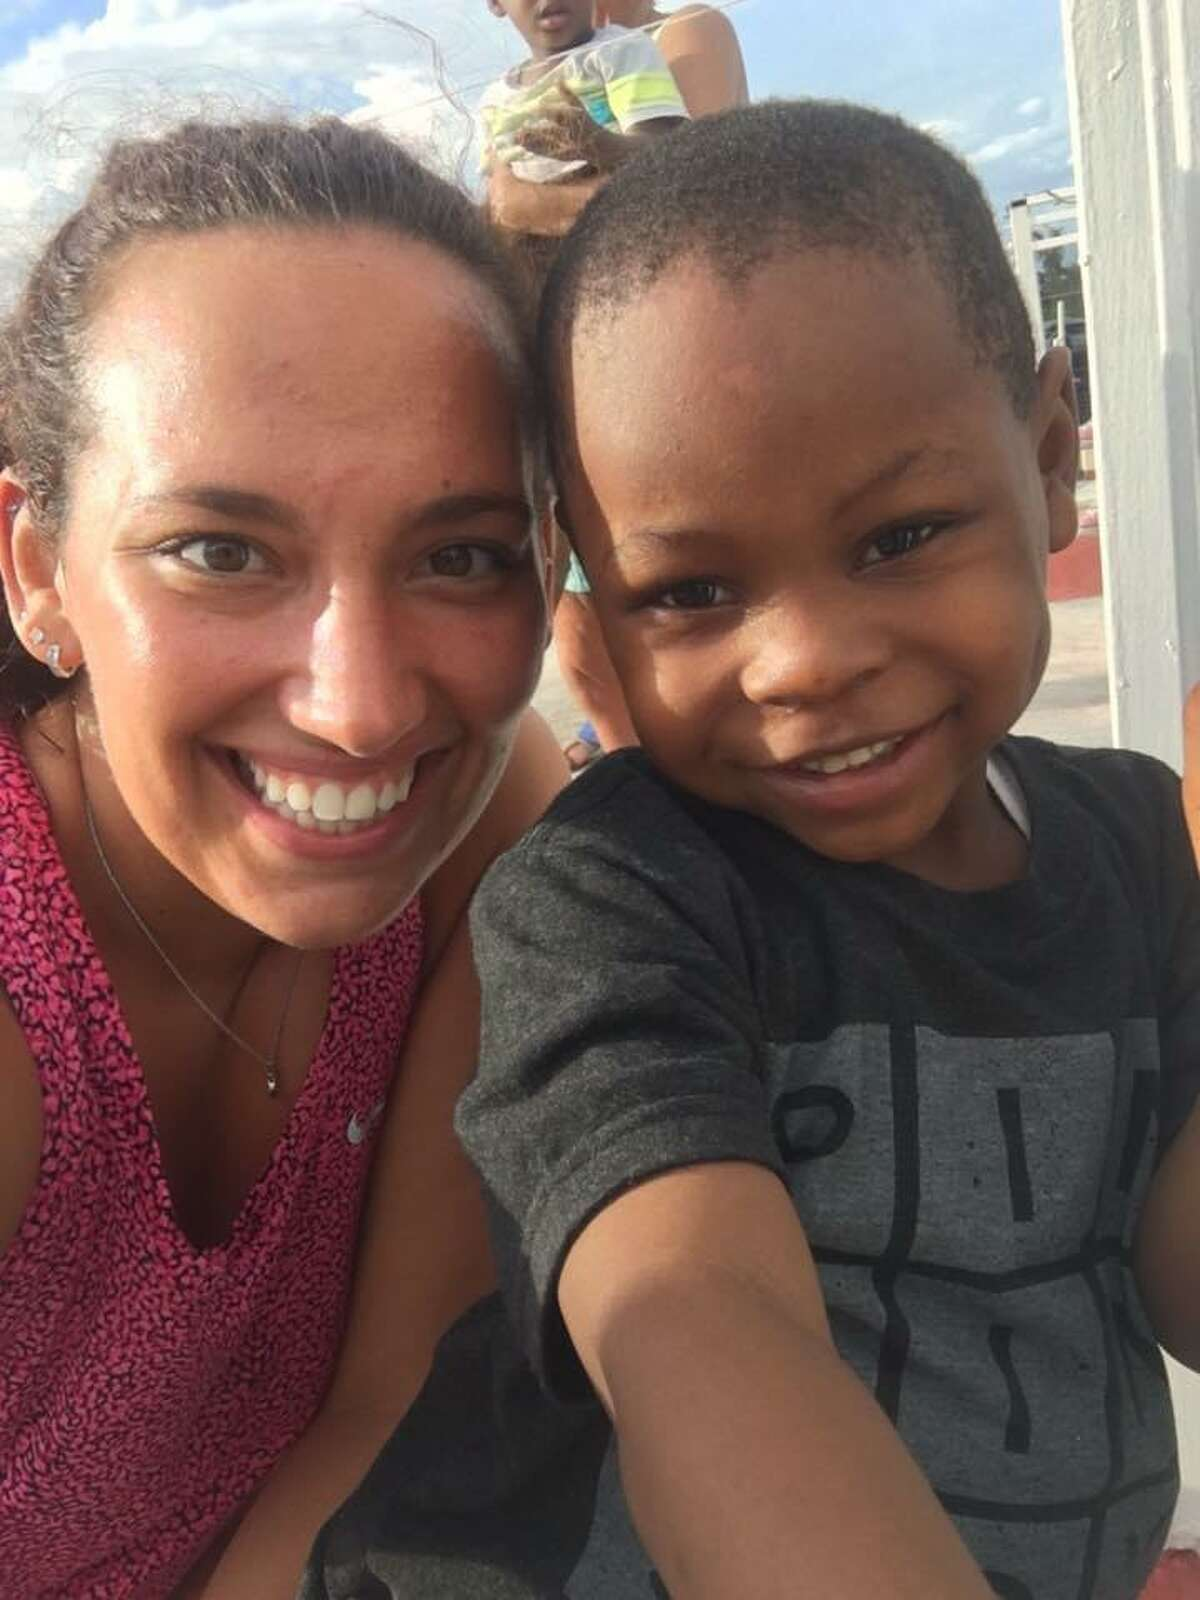 Torrington native Angelica Mourges lives and works in a mountain town in Haiti, where she is the education director of a school, Academie Brezou. She is pictured with Robensley, her sponsored child, whom she traveled to visit in Haiti before becoming a teacher there.